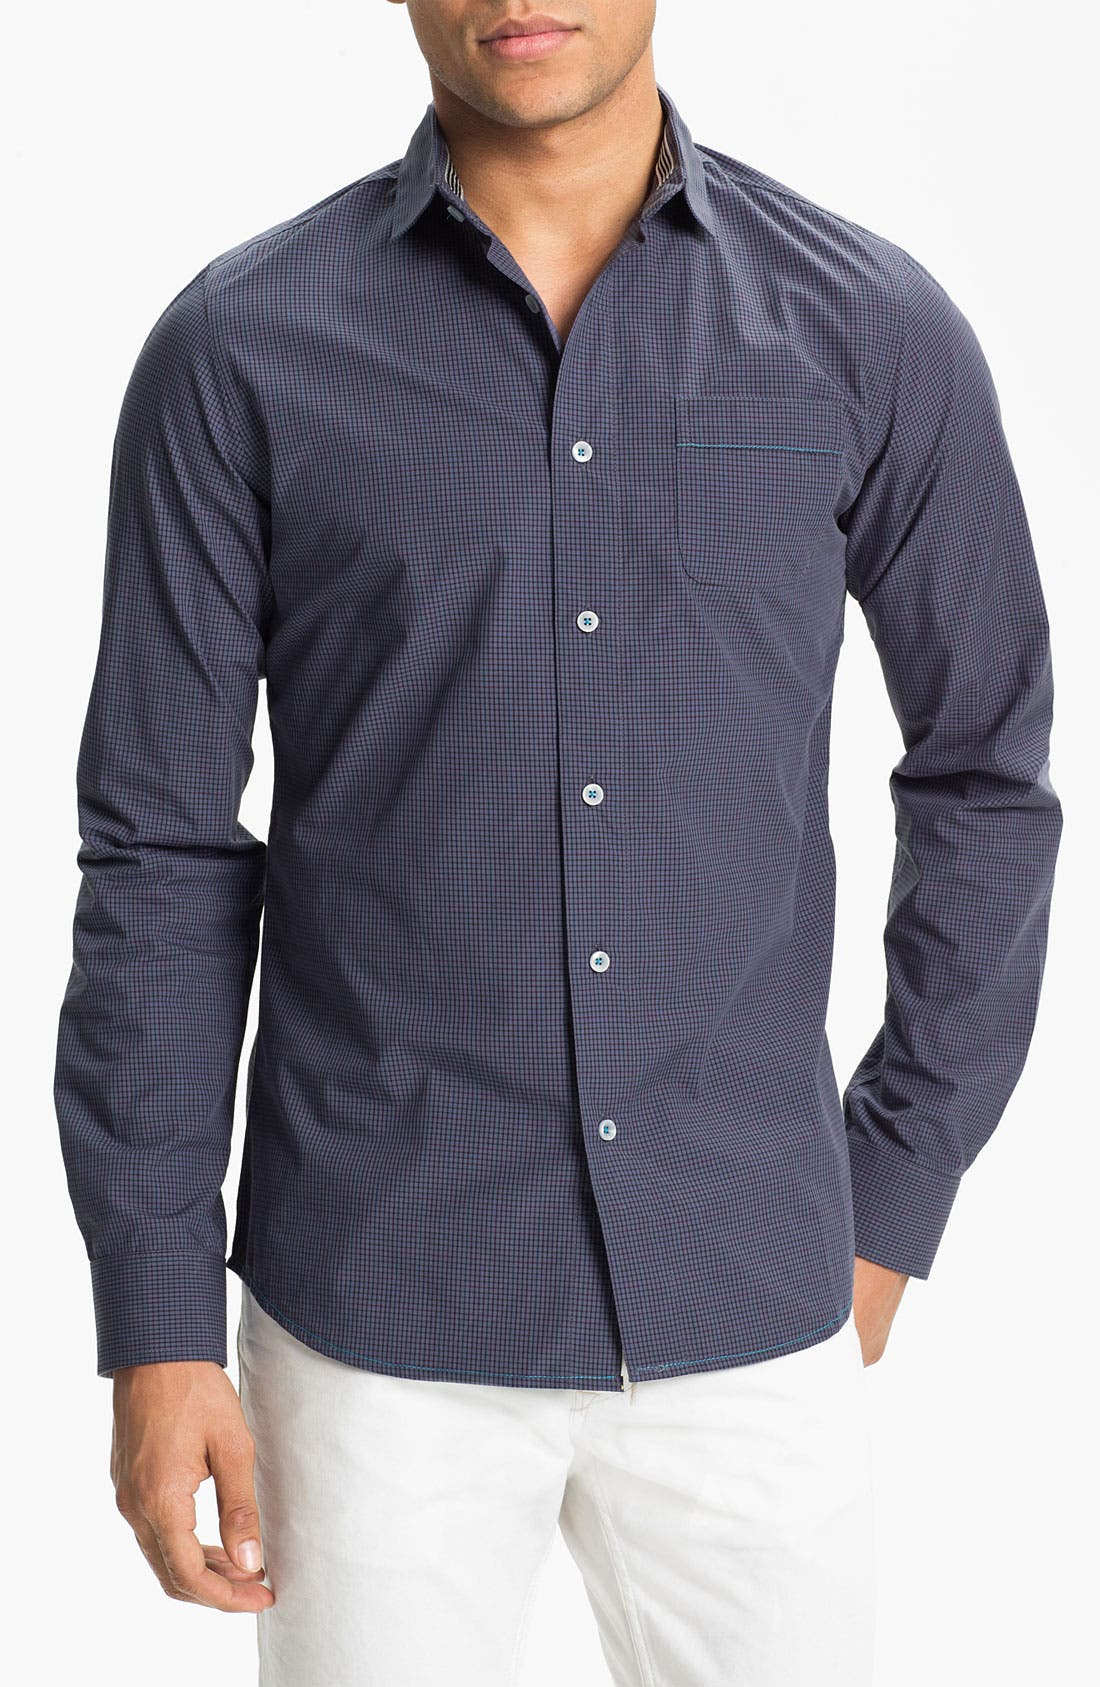 Main Image - Descendant of Thieves Check Woven Shirt